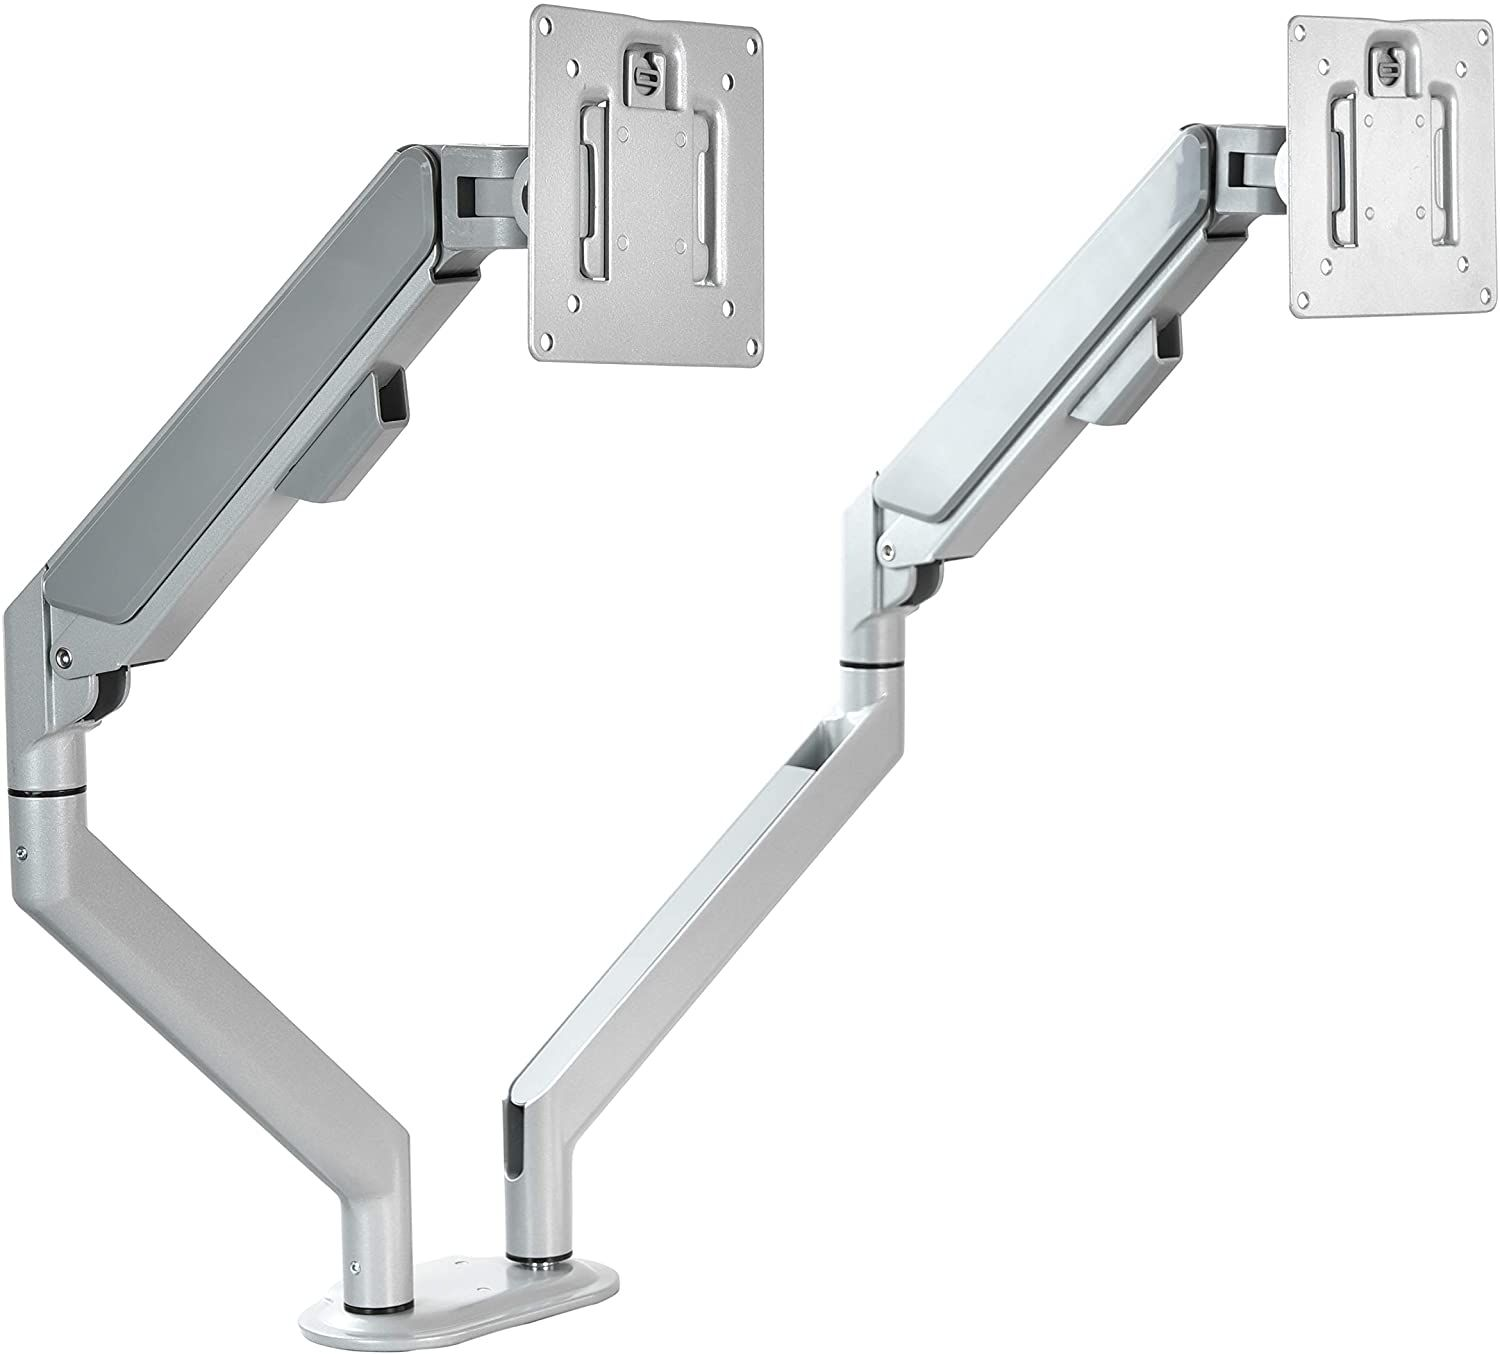 Price 59 99 Top Dual Monitor Stand Articulating Gas Spring In 2020 Dual Monitor Stand Top Computer Monitor Stand